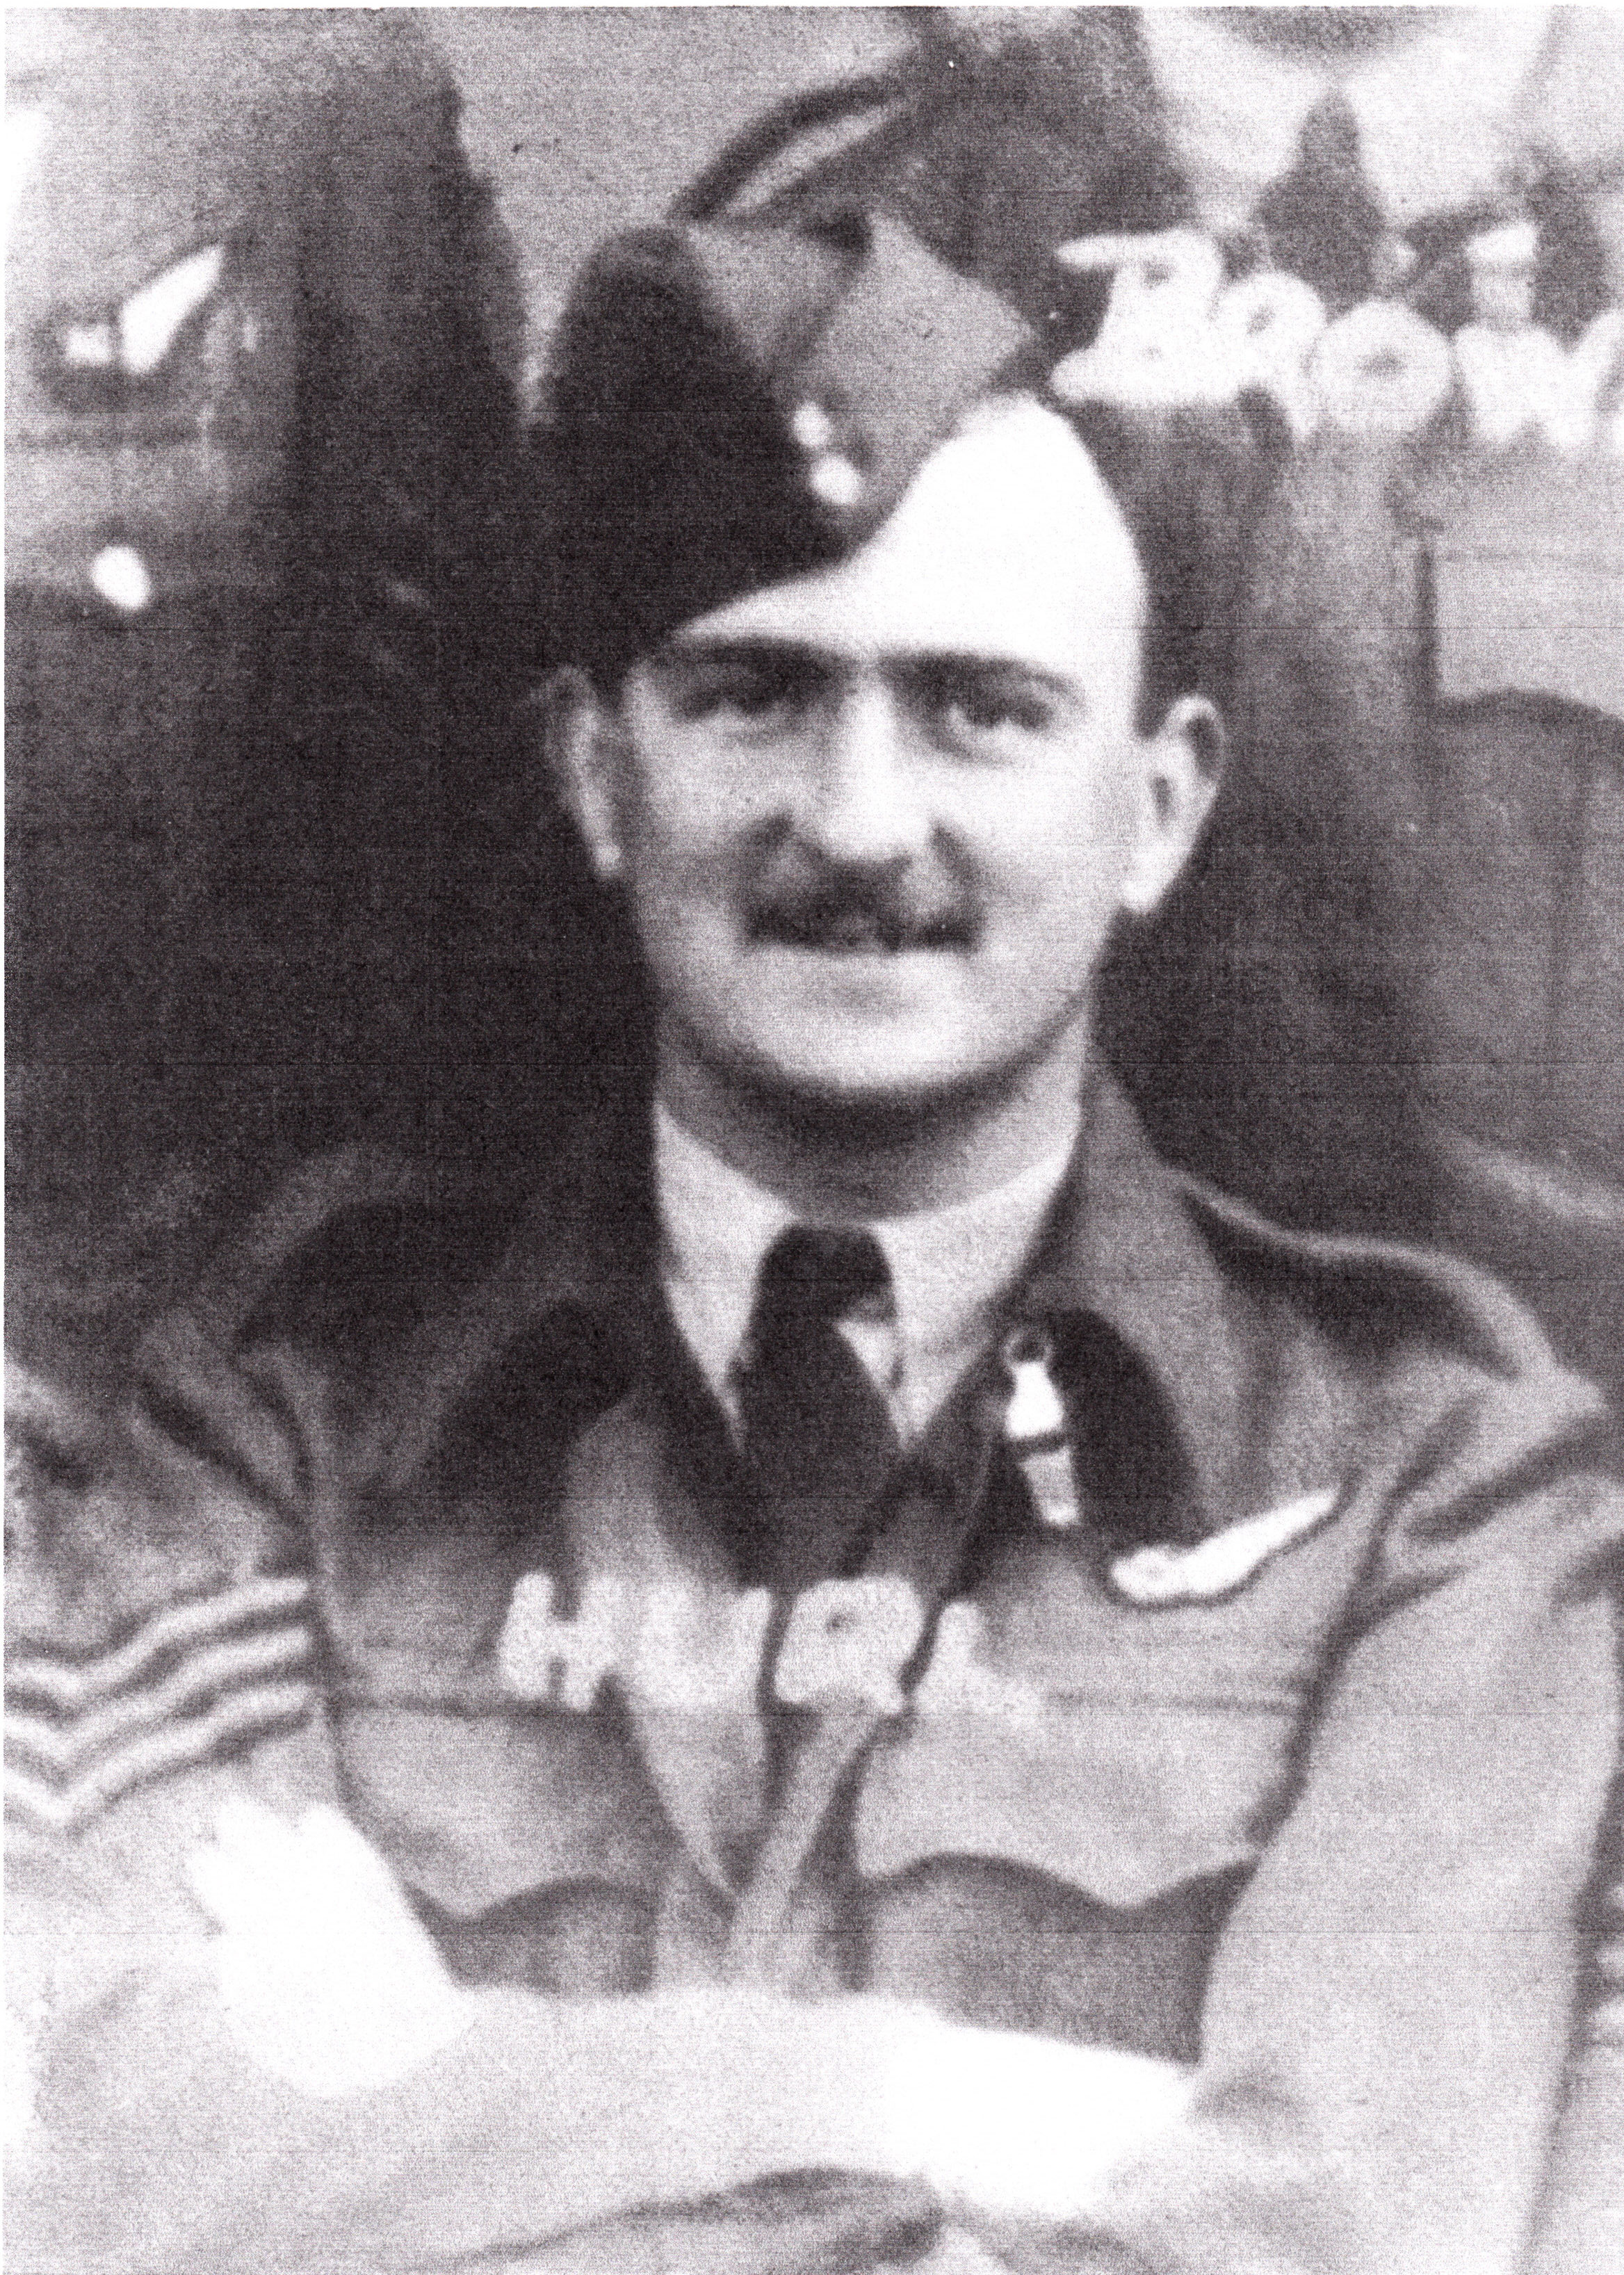 Escapes Dunkirk and joins Royal Air Force